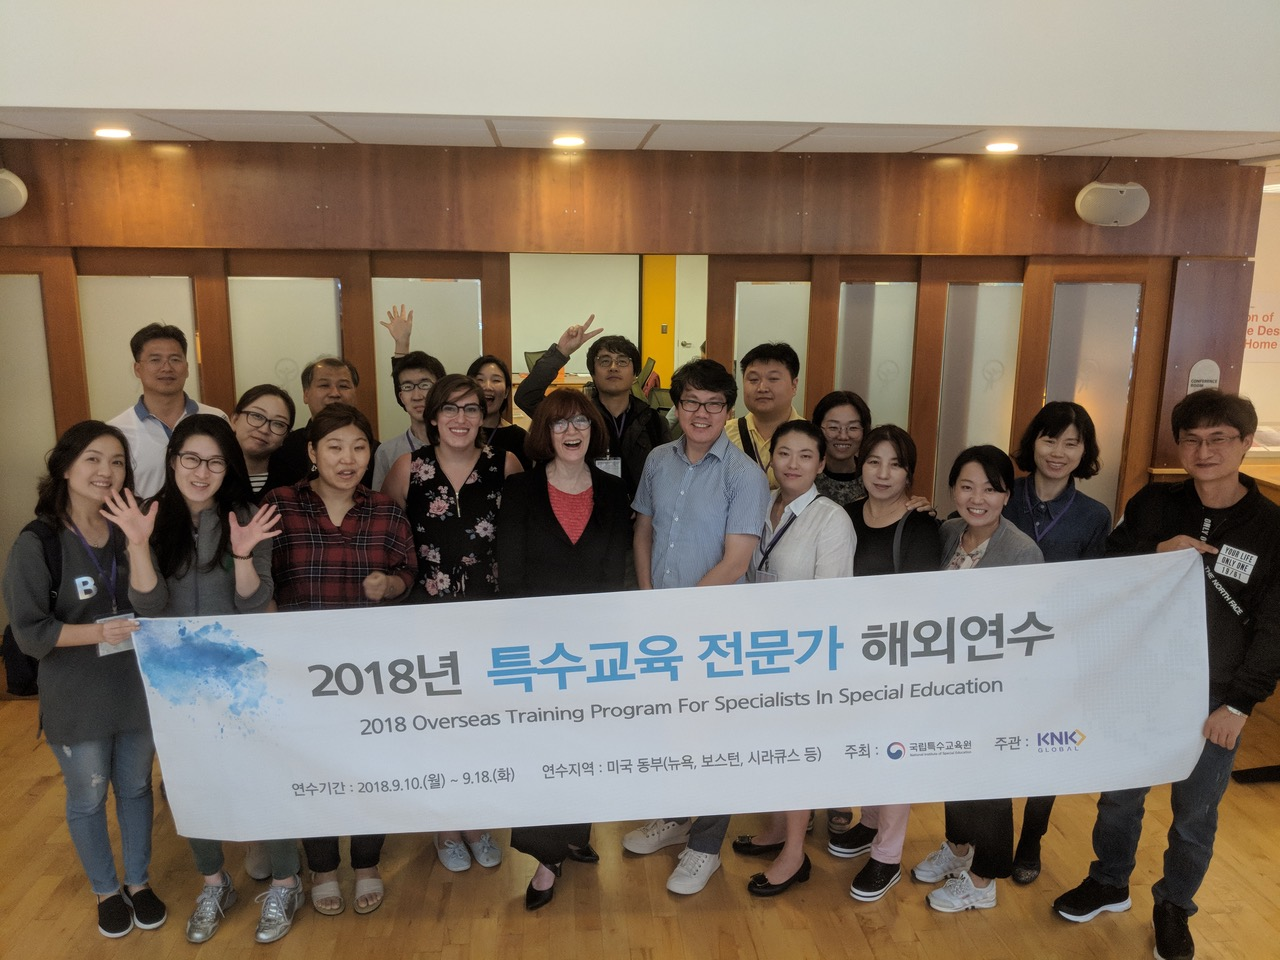 Group of Korean visitors at IHCD office with Valerie and intern Ariel for 2018 Overseas Training Program for Specialists in Special Education